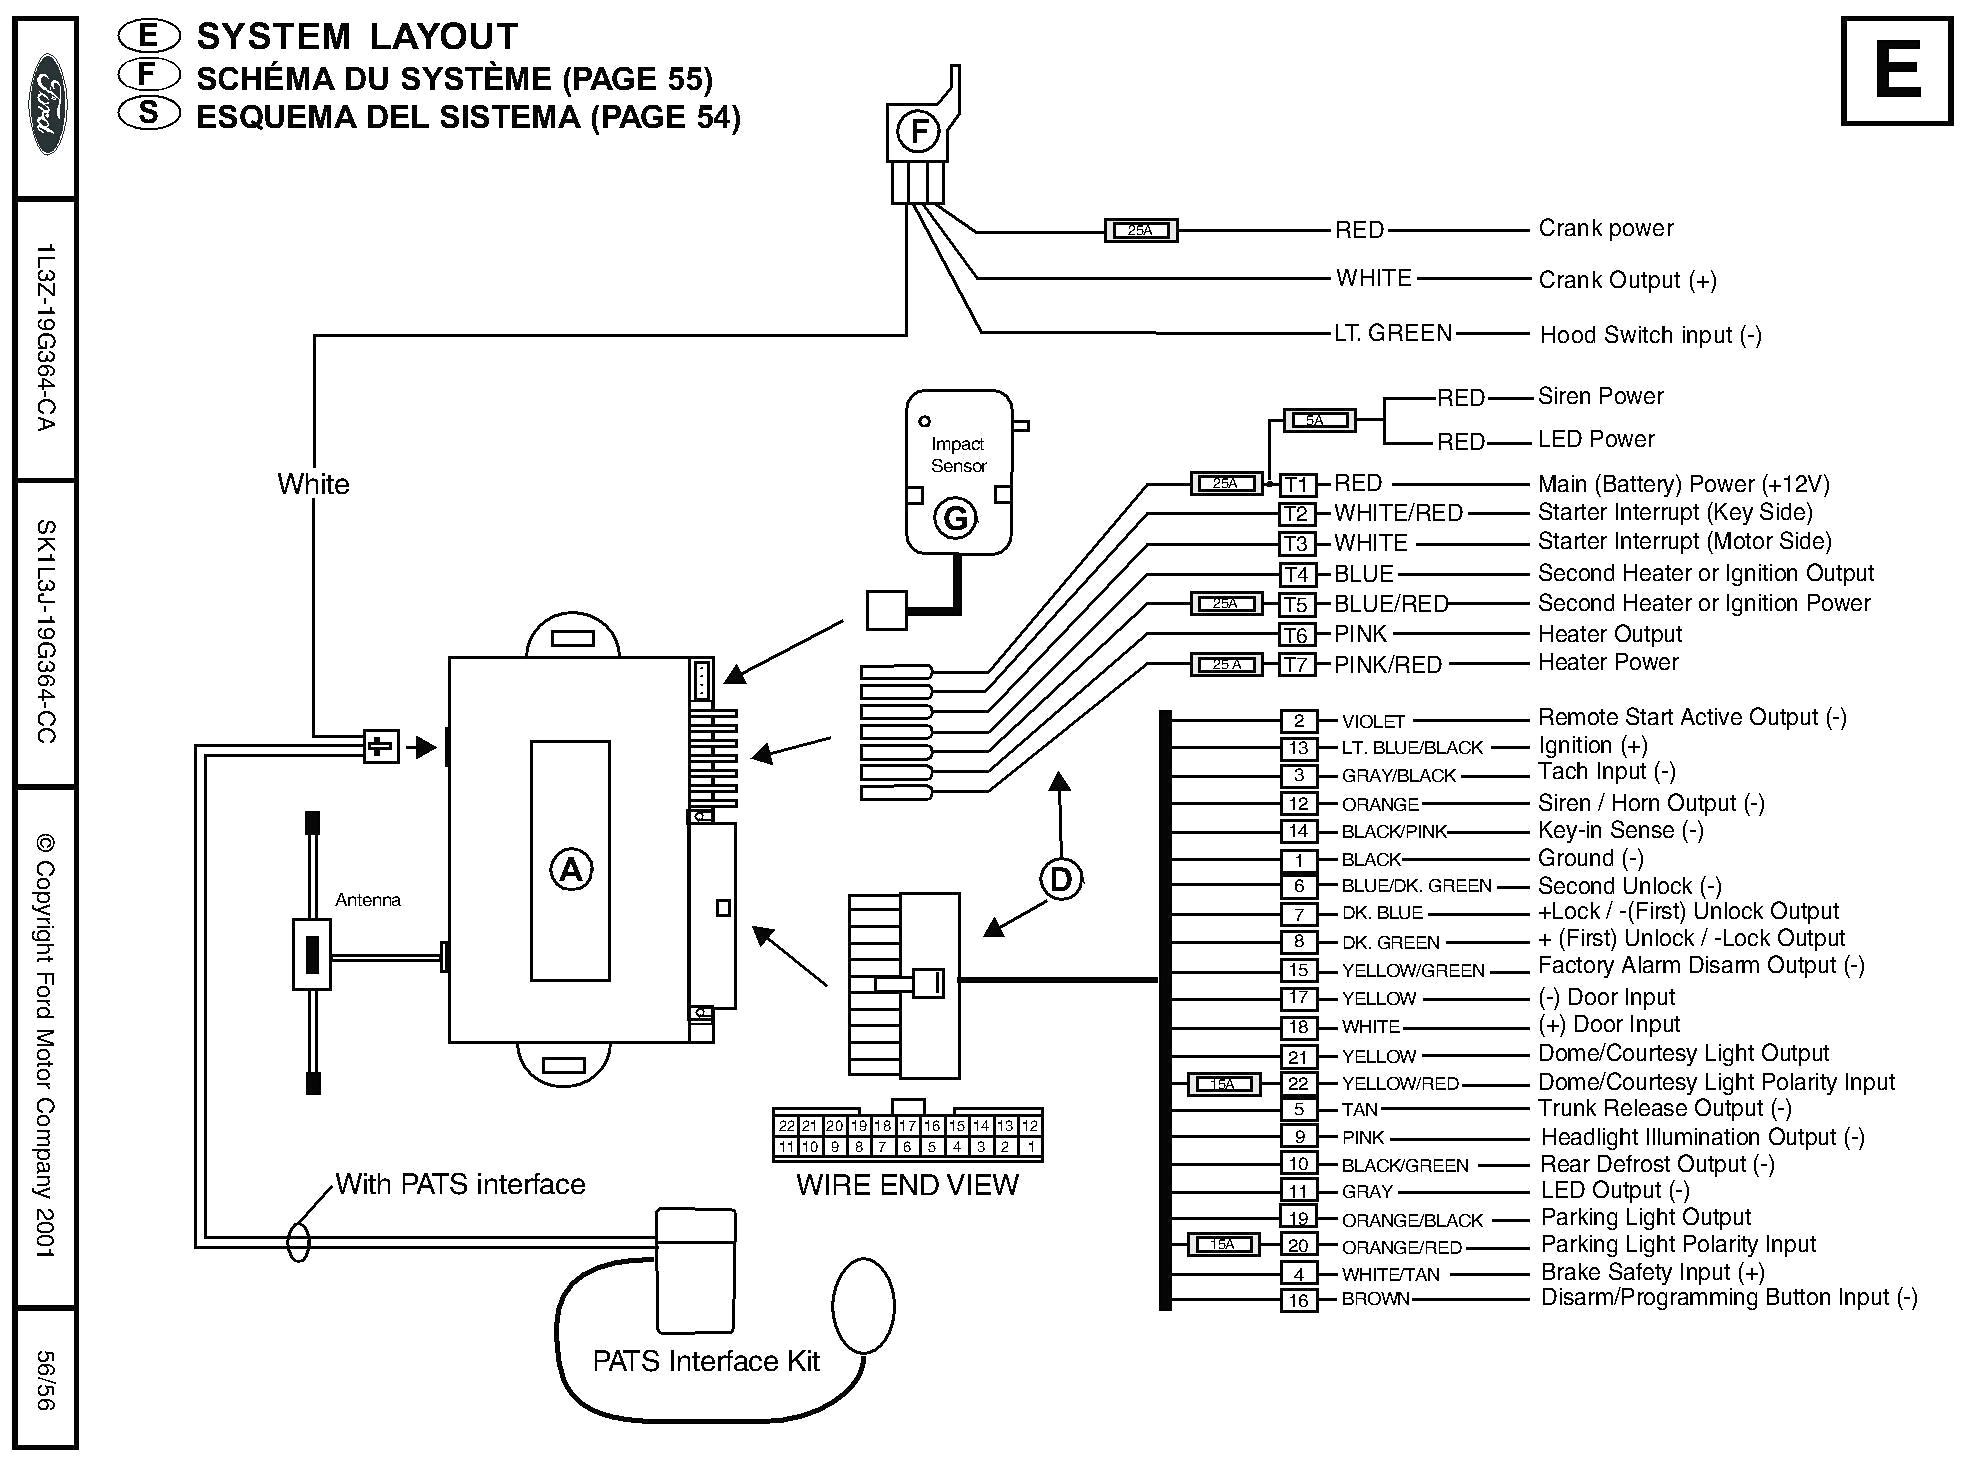 [DIAGRAM_5UK]  CFED Chapman Security System Wiring Diagram | Wiring Library | Security System Wire Diagram |  | Wiring Library